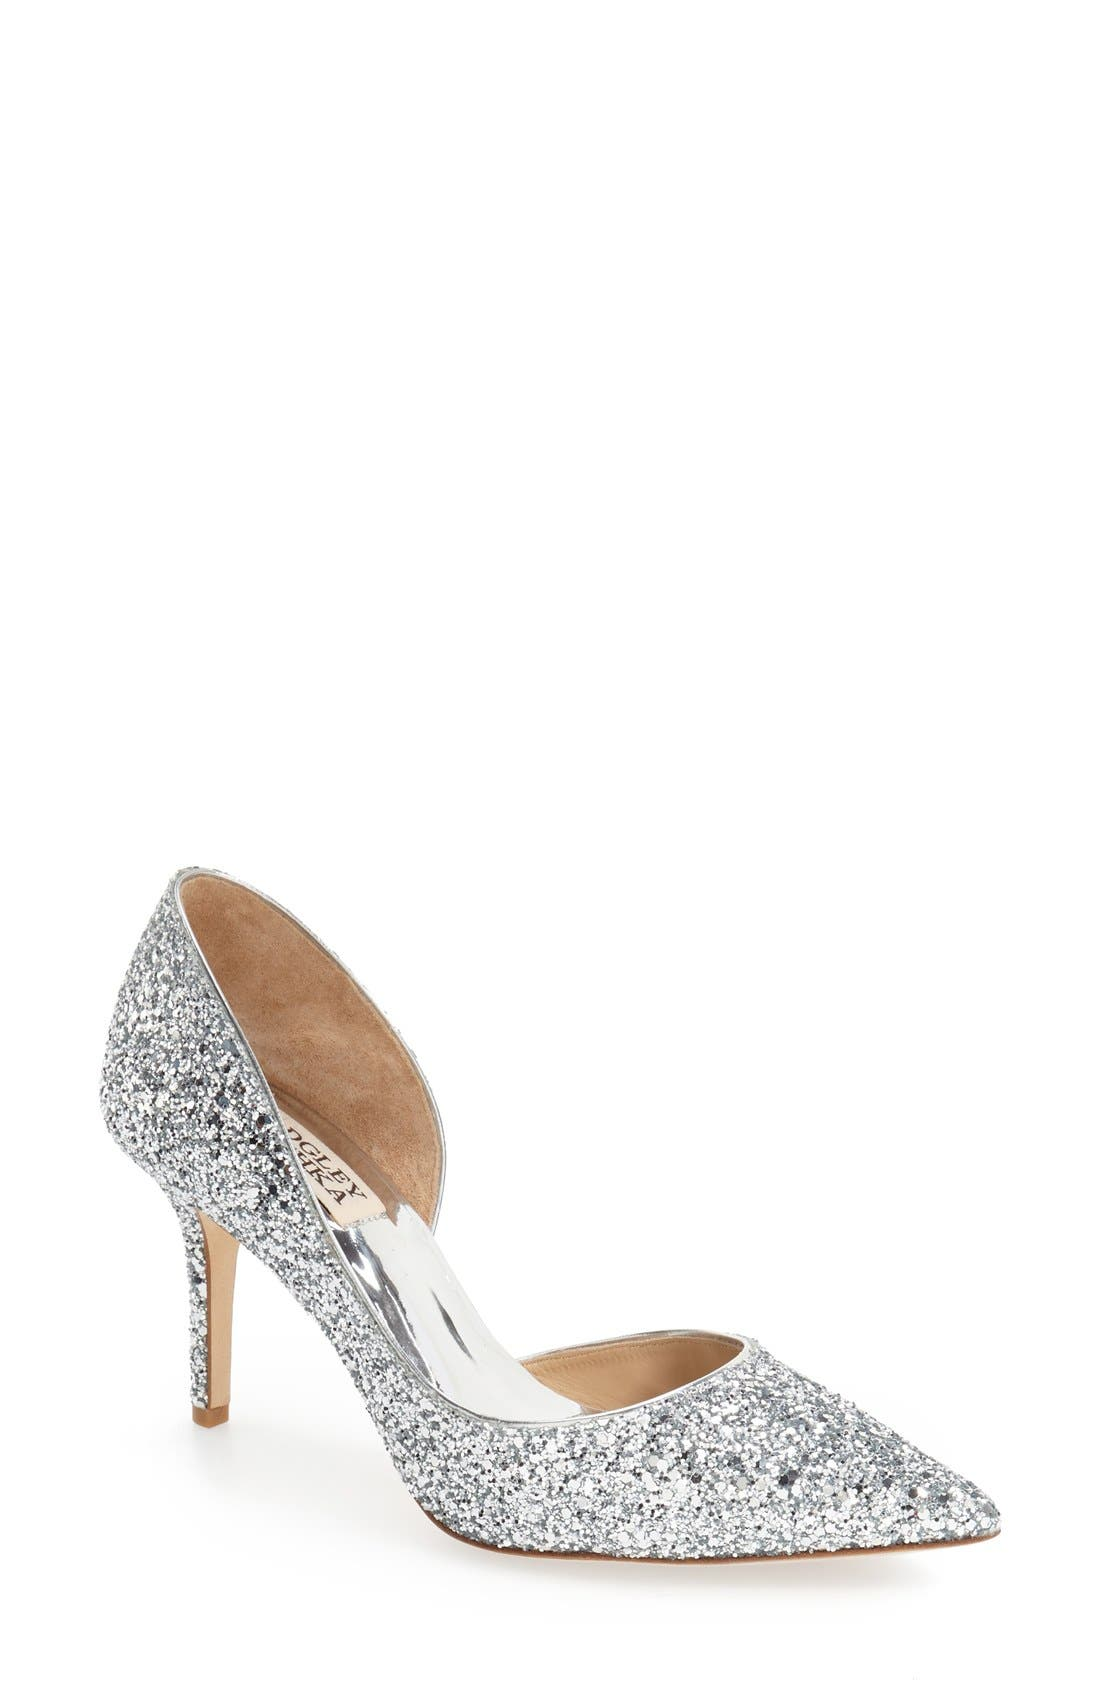 Badgley Mischka 'Daisy' Embellished Pointy Toe Pump (Women)